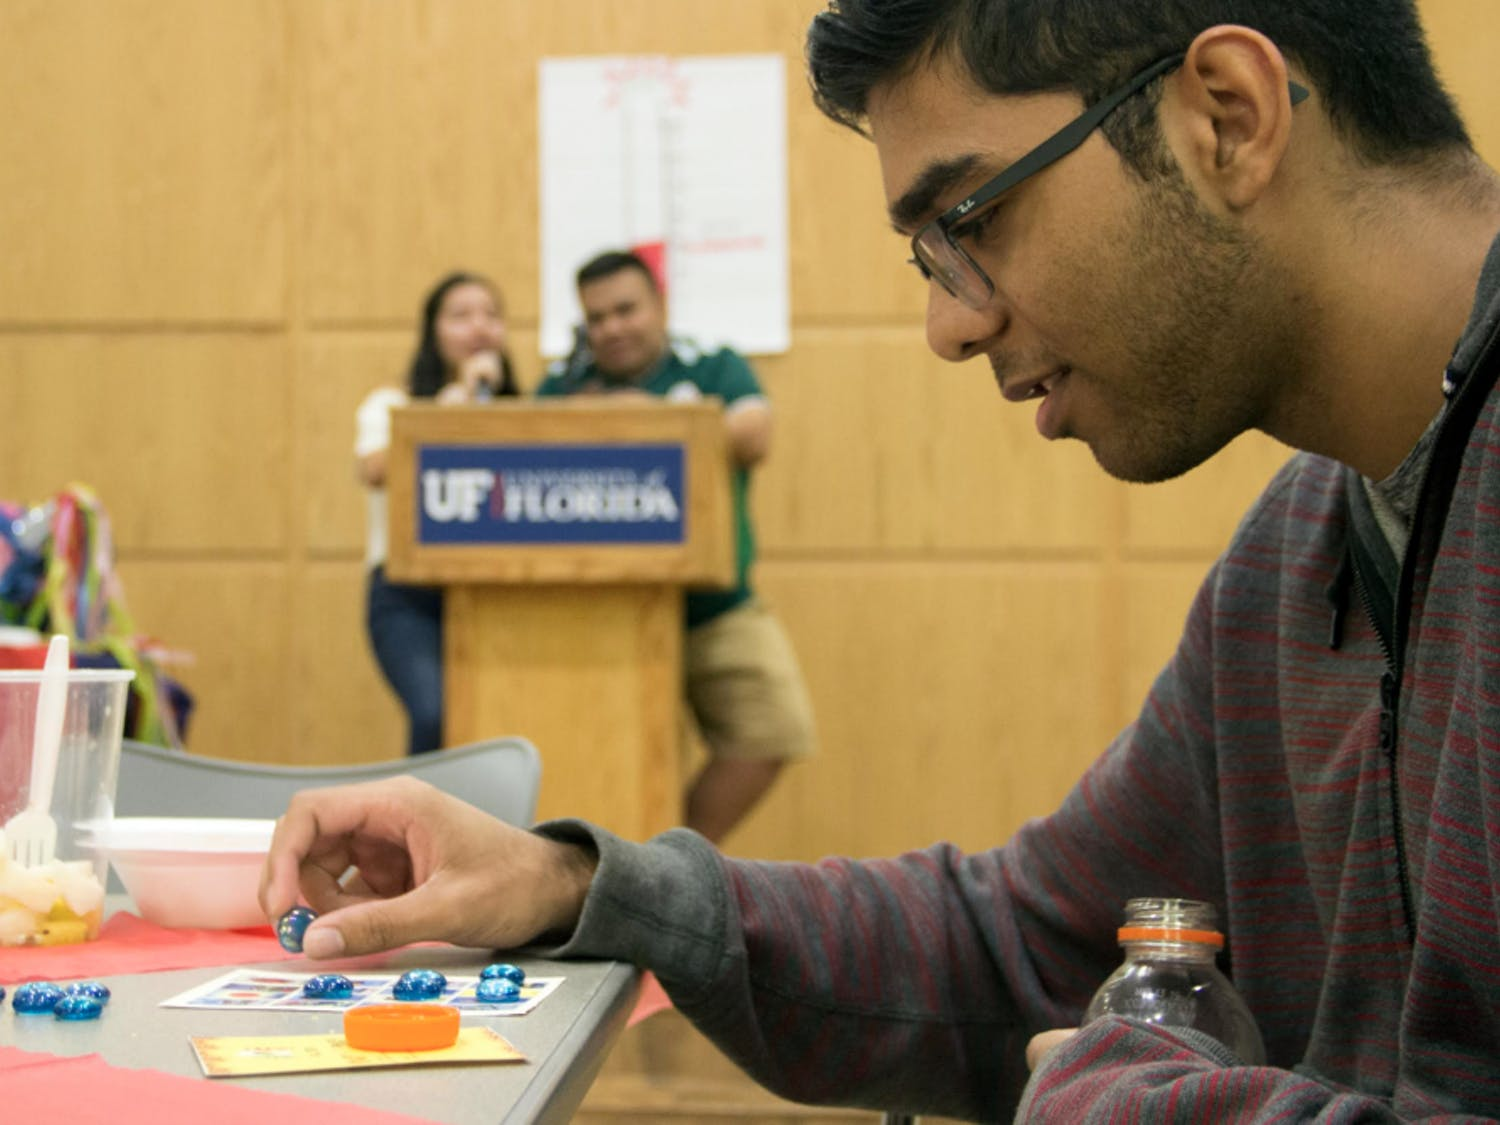 Garrick Sewsankar, an 18-year-old computer science freshman, plays Noche de Lotería on Monday, October 15, during a fundraiser held by the Mexican-American Student Association. Similar to Bingo, Sewsankar was one space away from winning the round. Donations from the fundraiser are going to help immigrants receive free legal services.